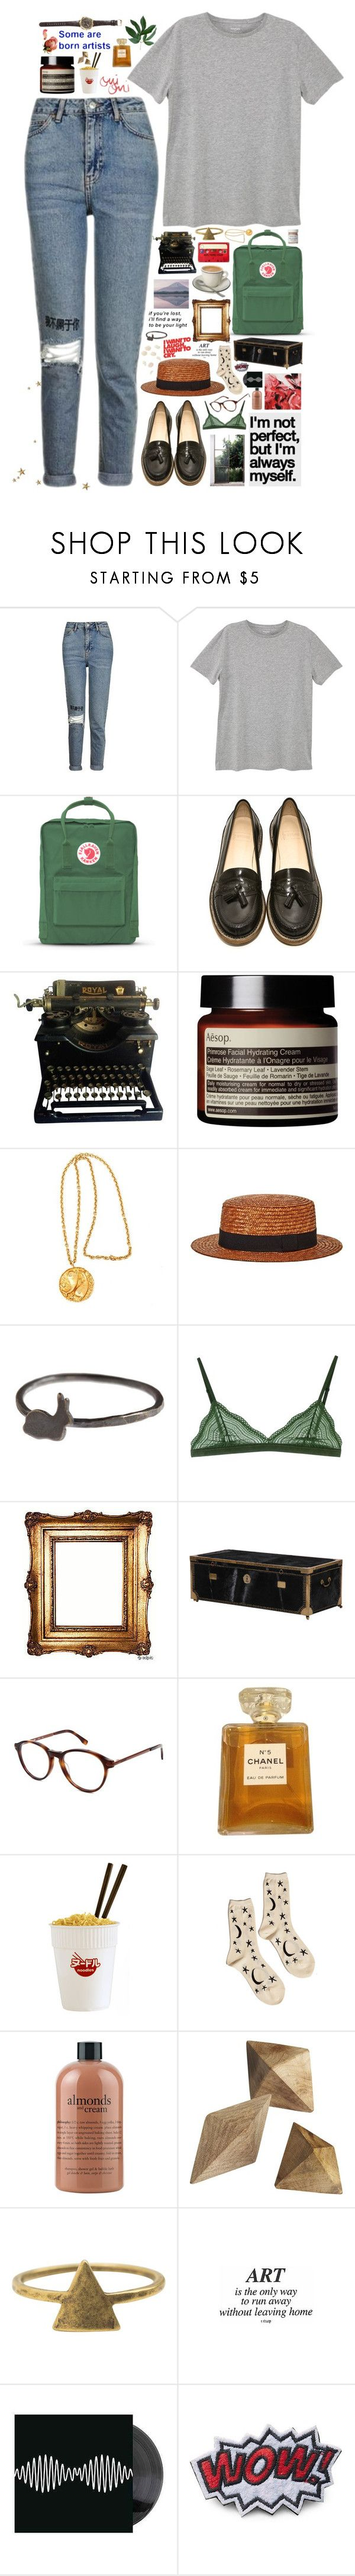 """""""WE'RE RUNNING THROUGH THE GARDEN WHERE NOTHING BOTHERED US"""" by kappucino ❤ liked on Polyvore featuring Topshop, MANGO MAN, Fjällräven, B Store, Aesop, Nasty Gal, D'Argent, Cosabella, Lacoste and French Girl"""